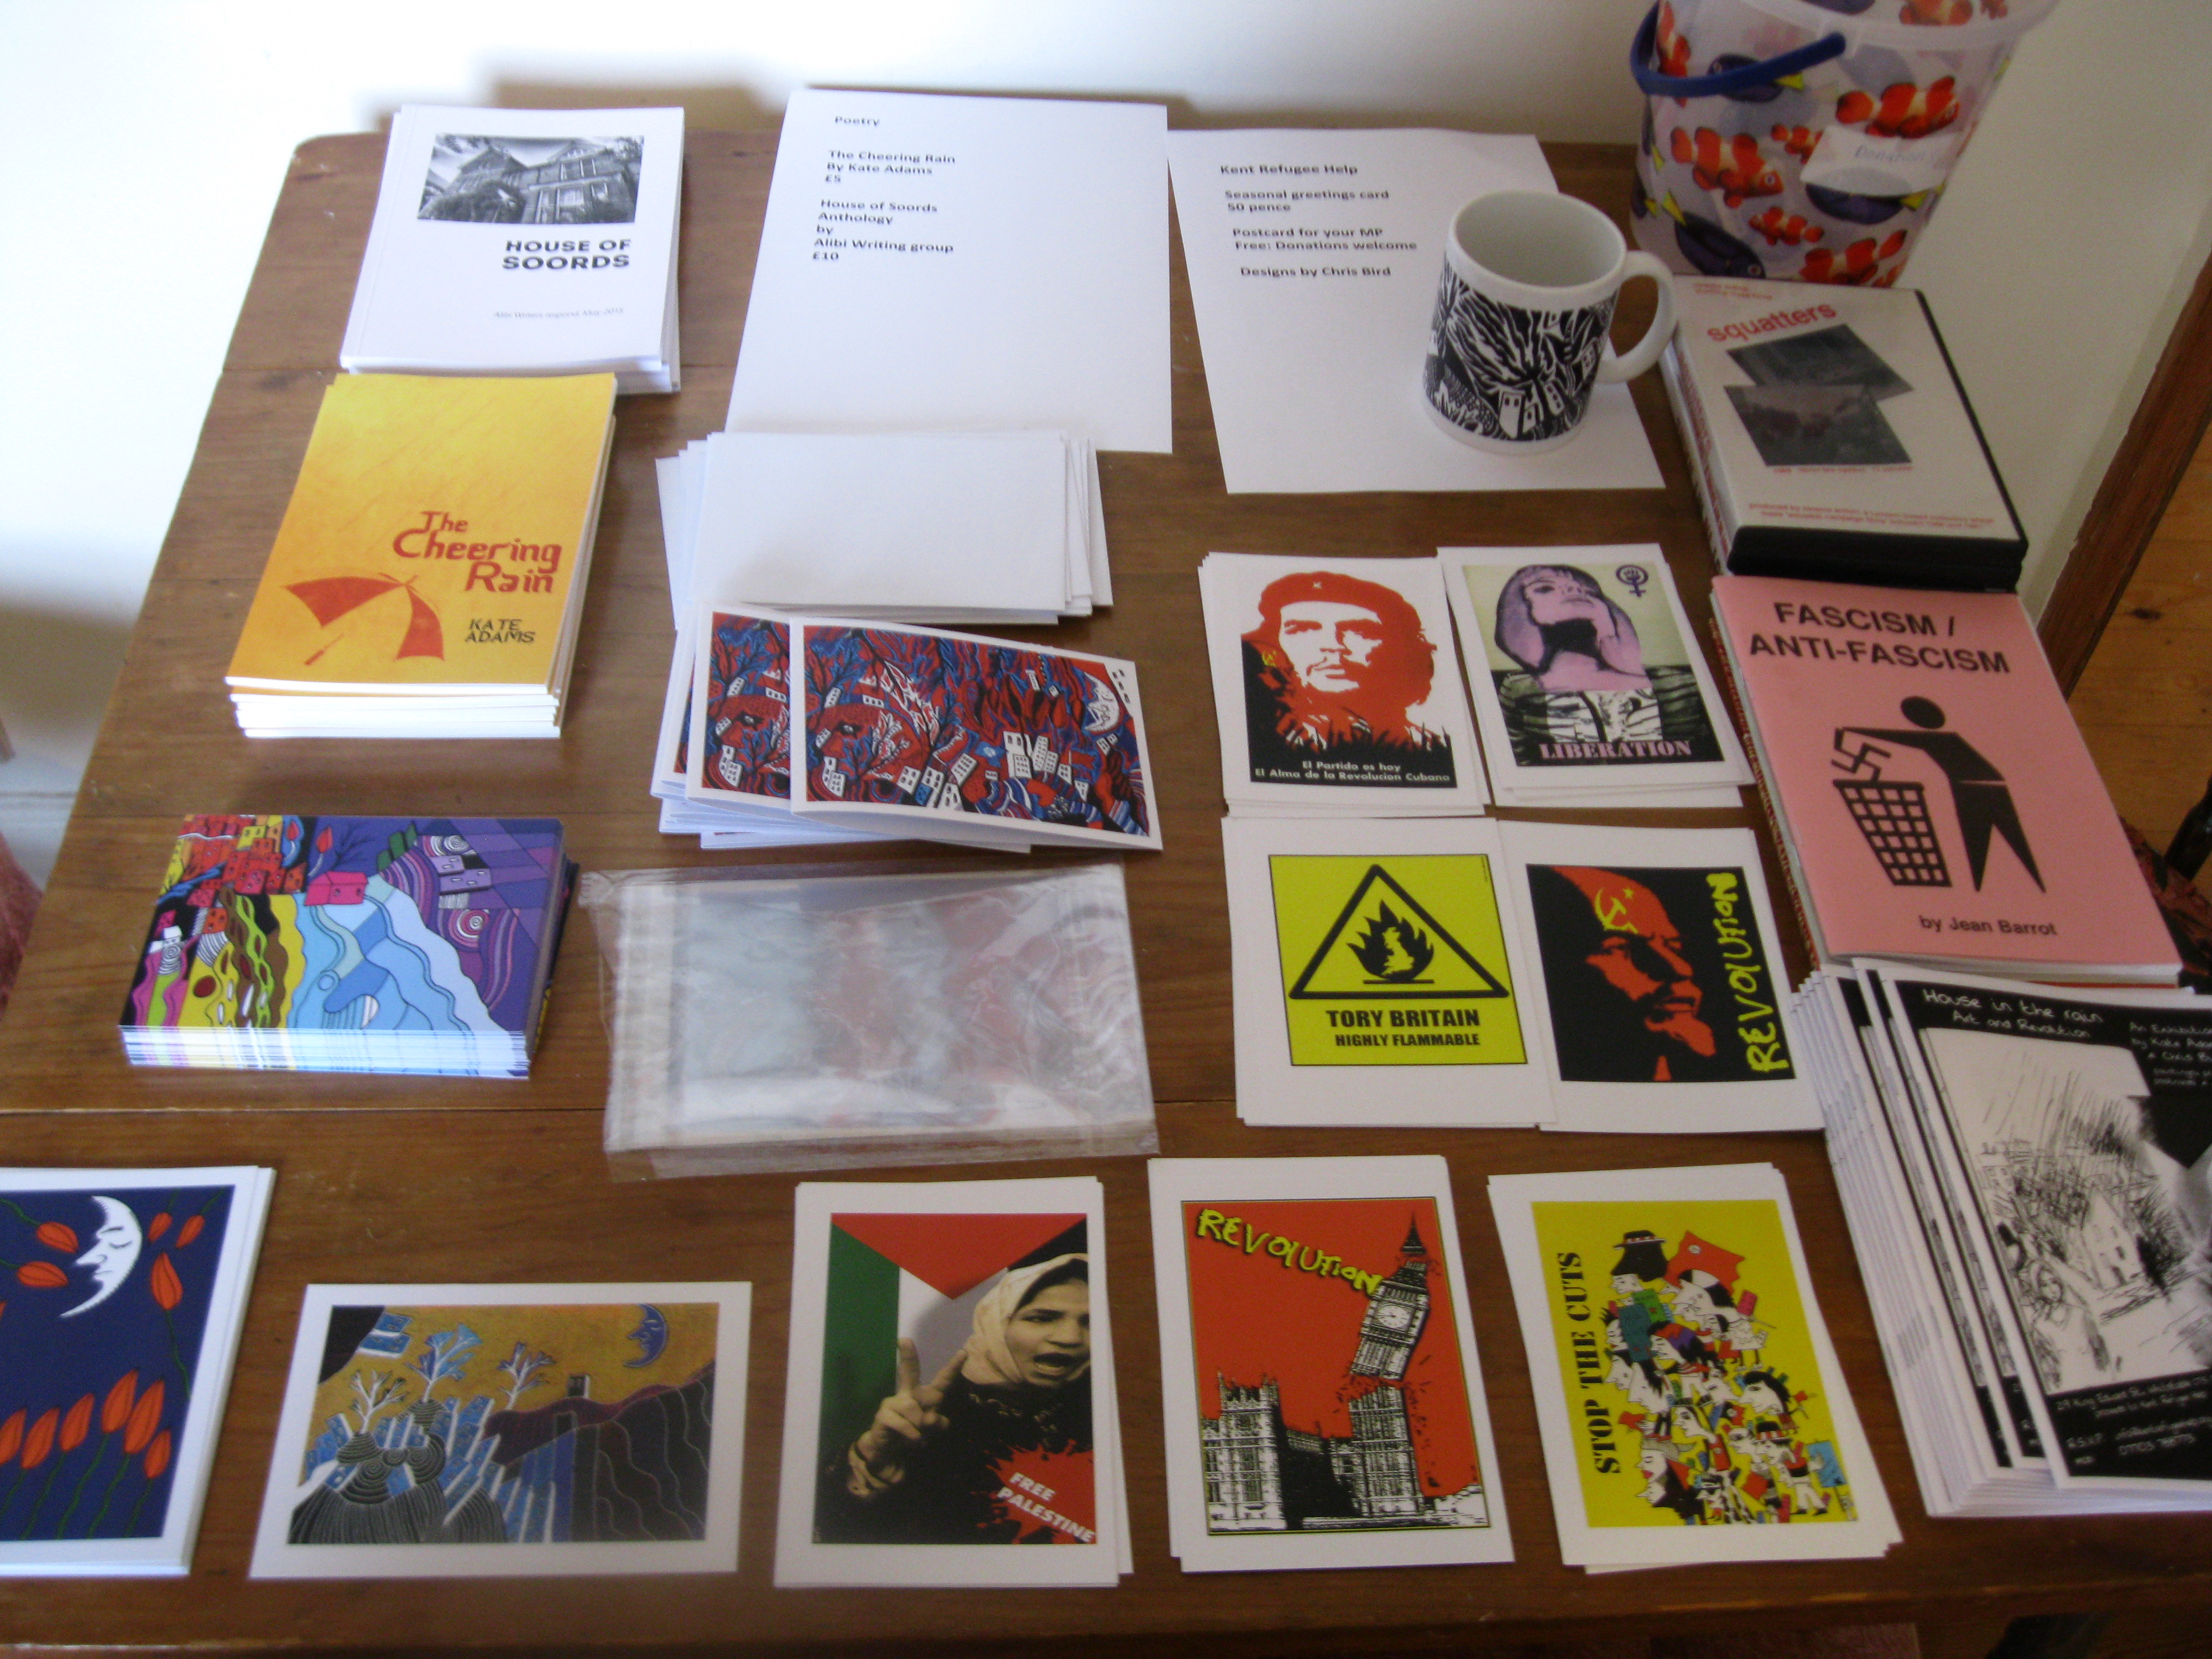 Art and Revolution images, Chris Bird